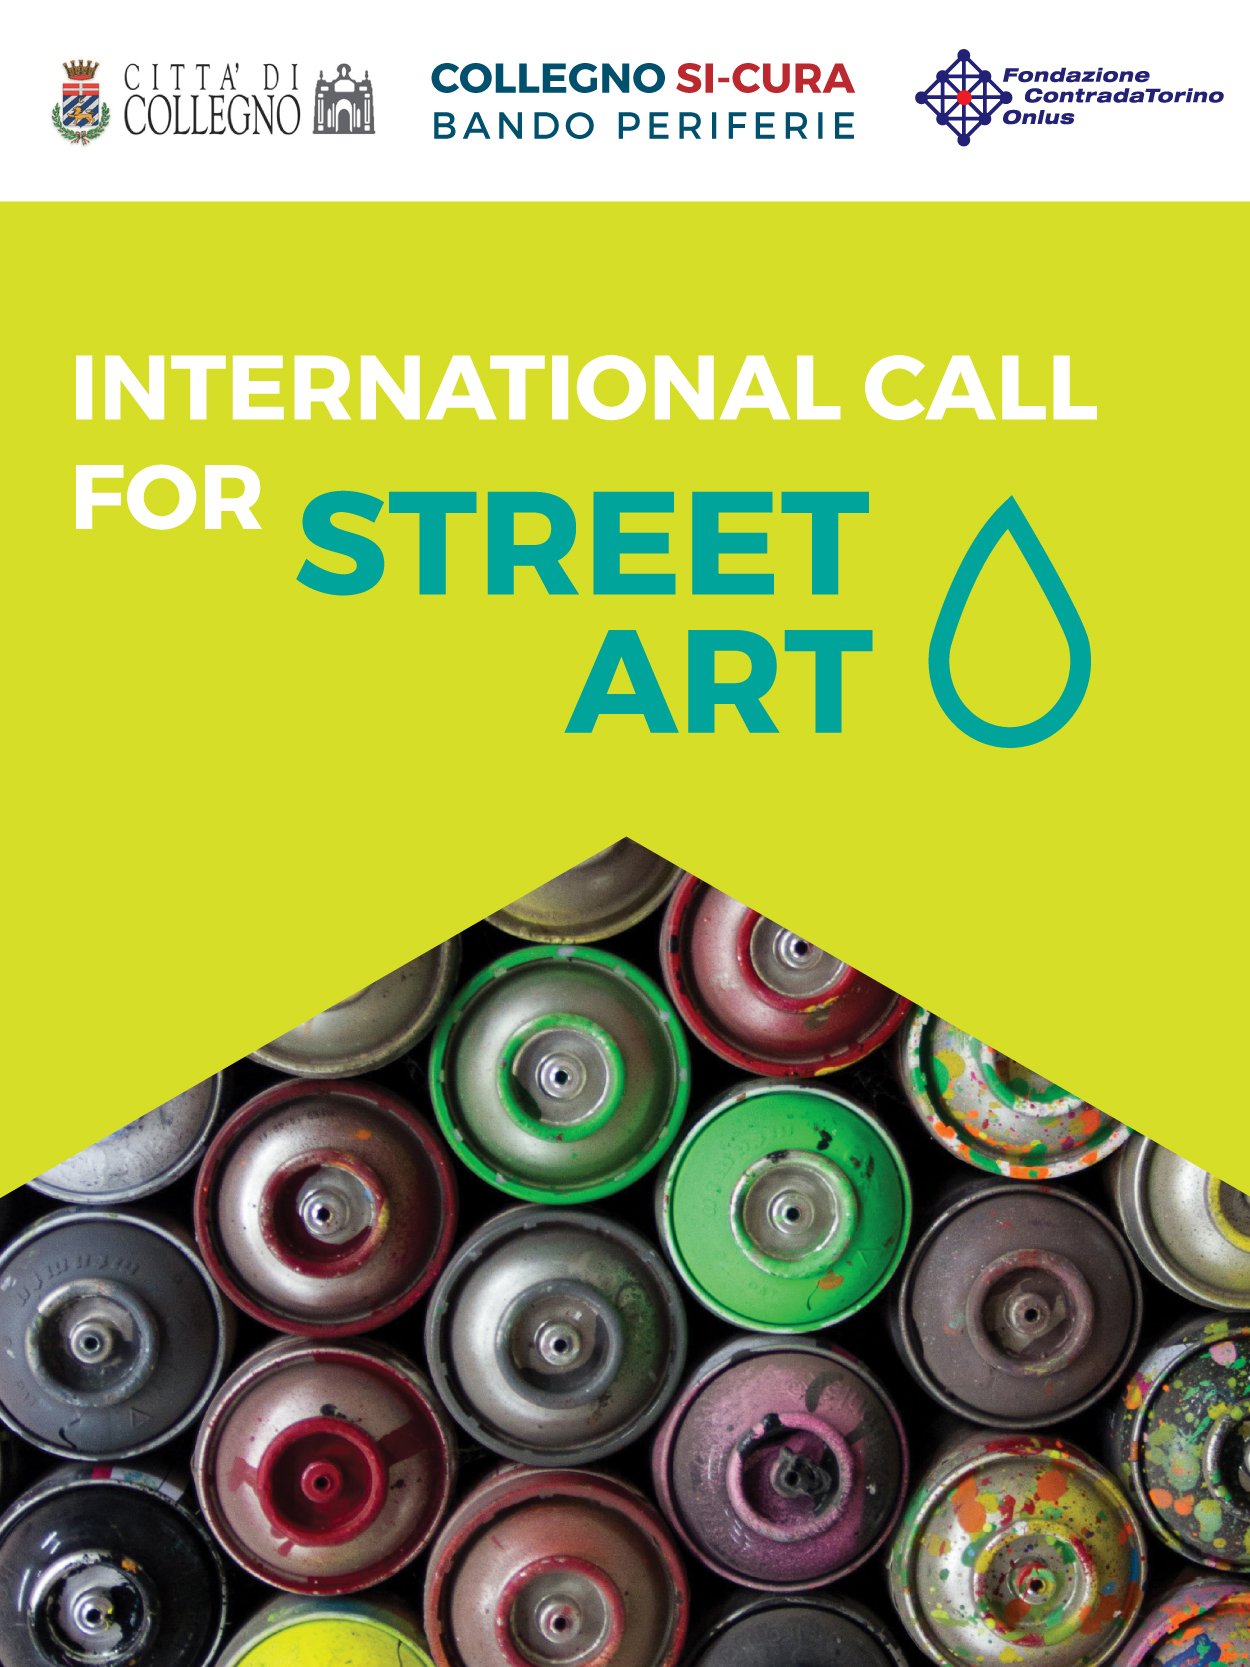 Call for Street Art in Collegno - Cities of Design Network